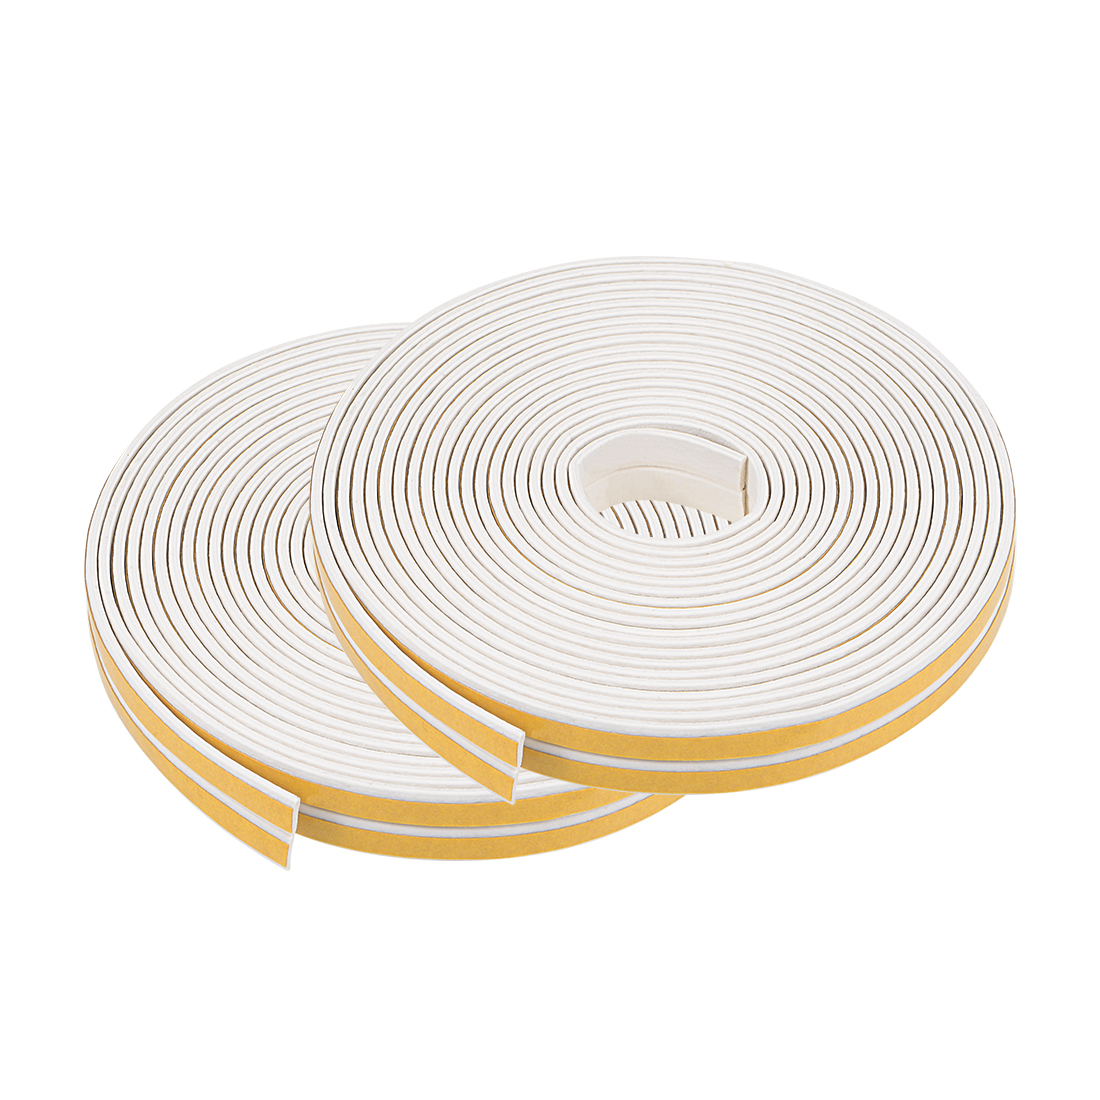 Foam Tape Adhesive 9mm Wide 2mm Thick, Total 65.6 Feet White 4Pcs